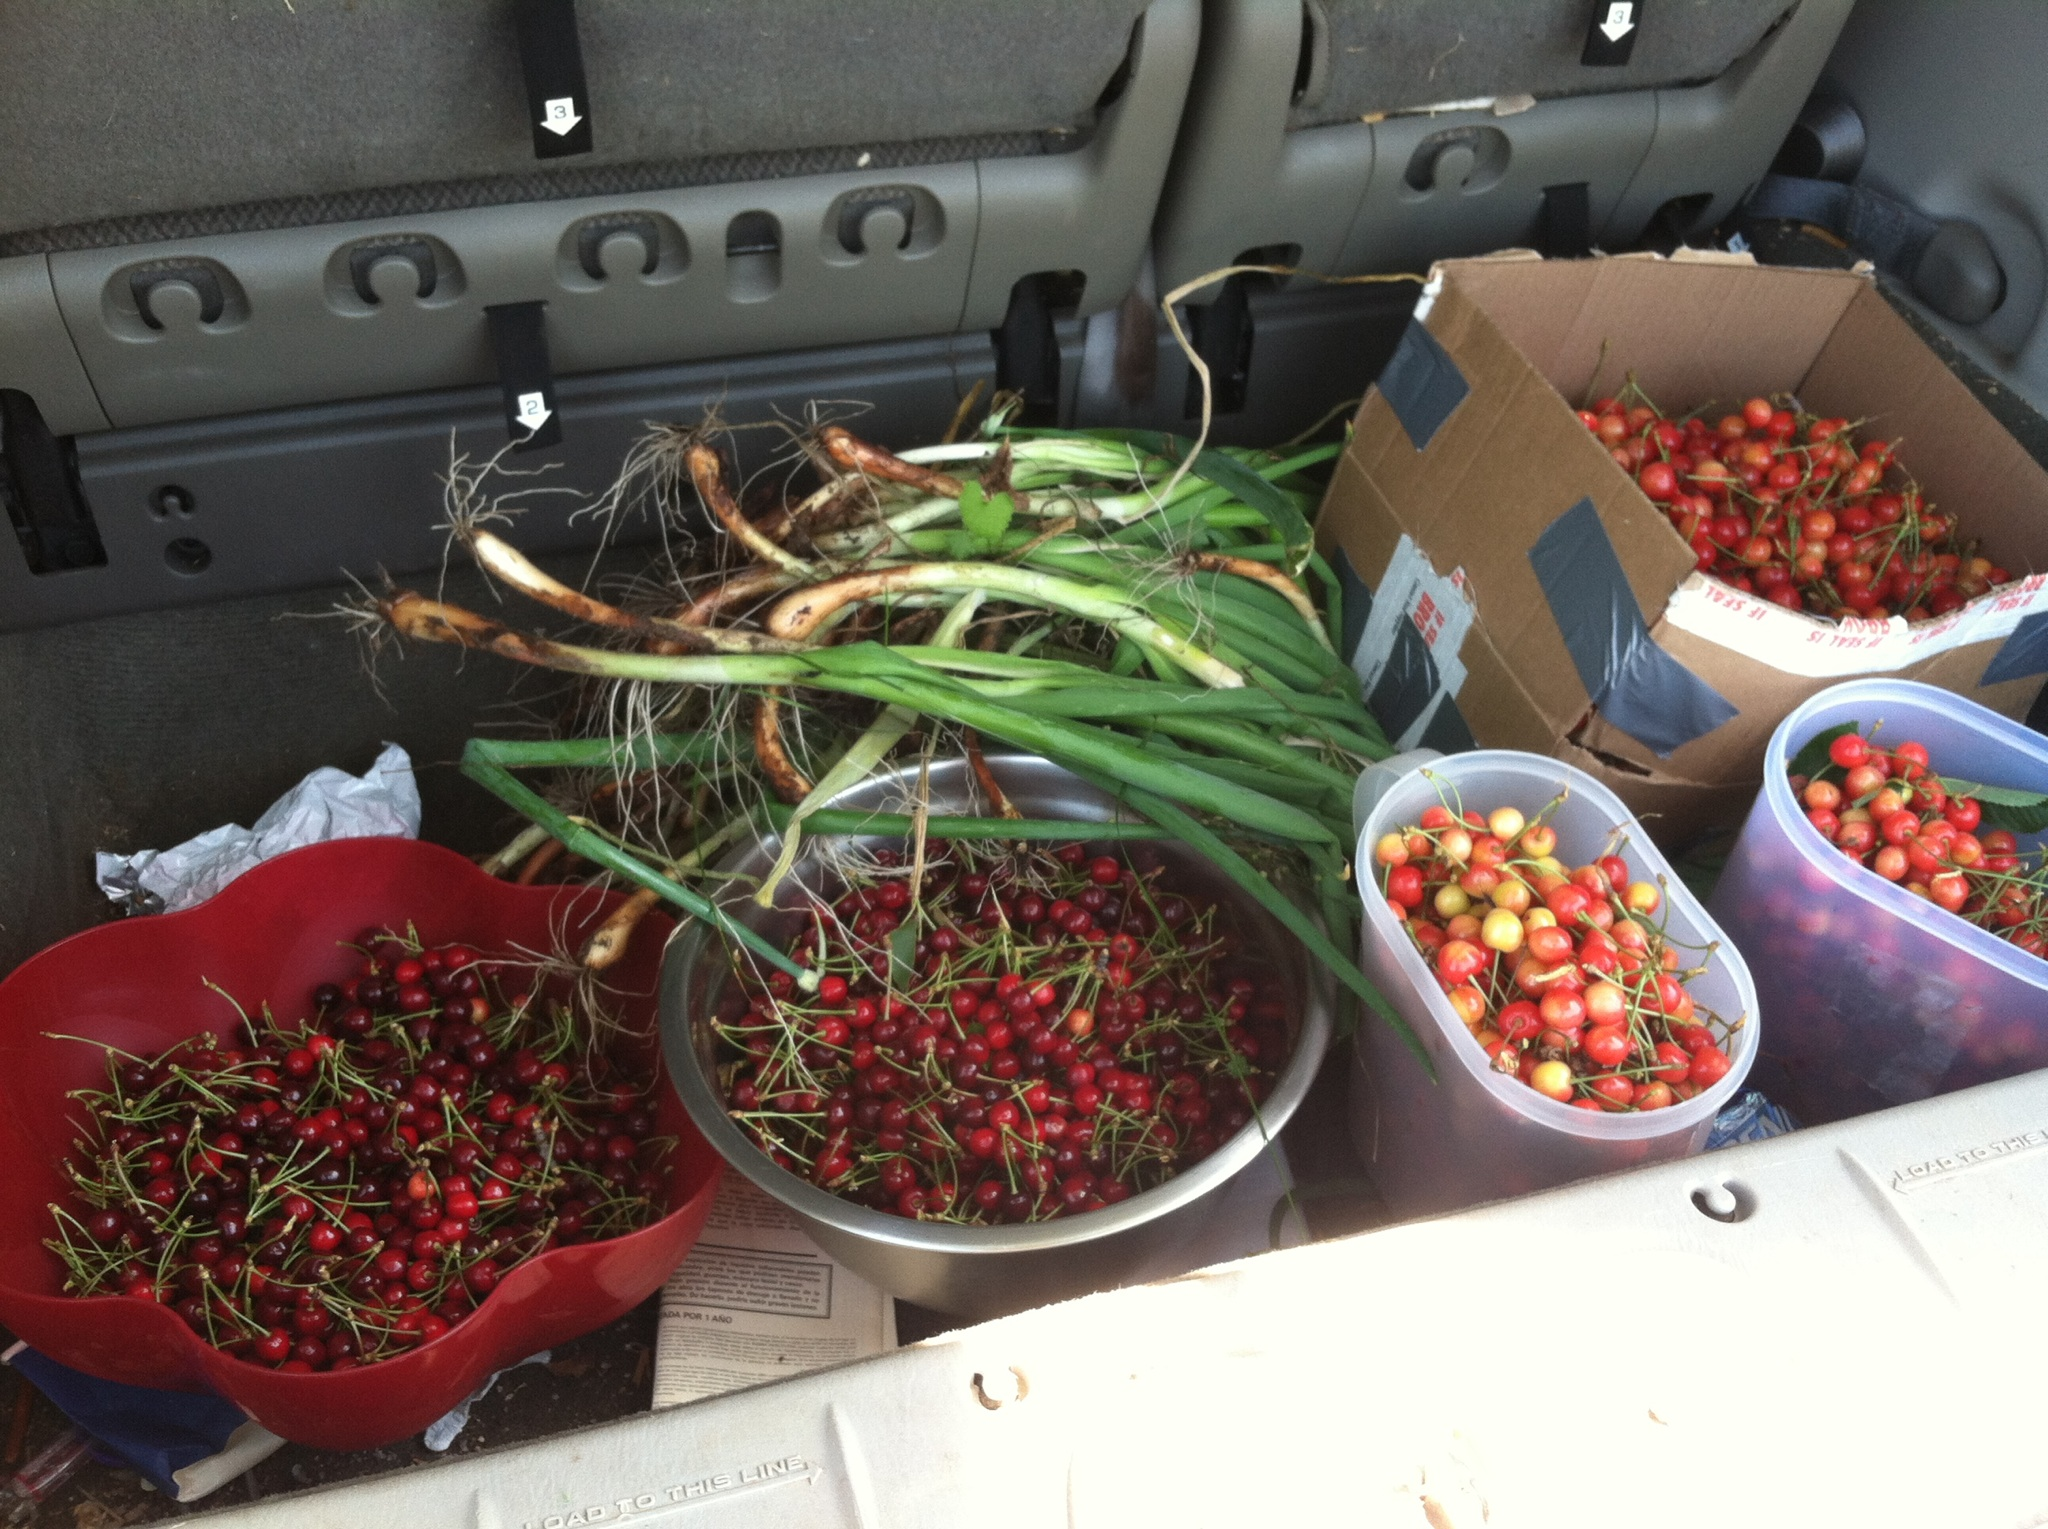 Here is the haul: two types of cherries and wild onions.